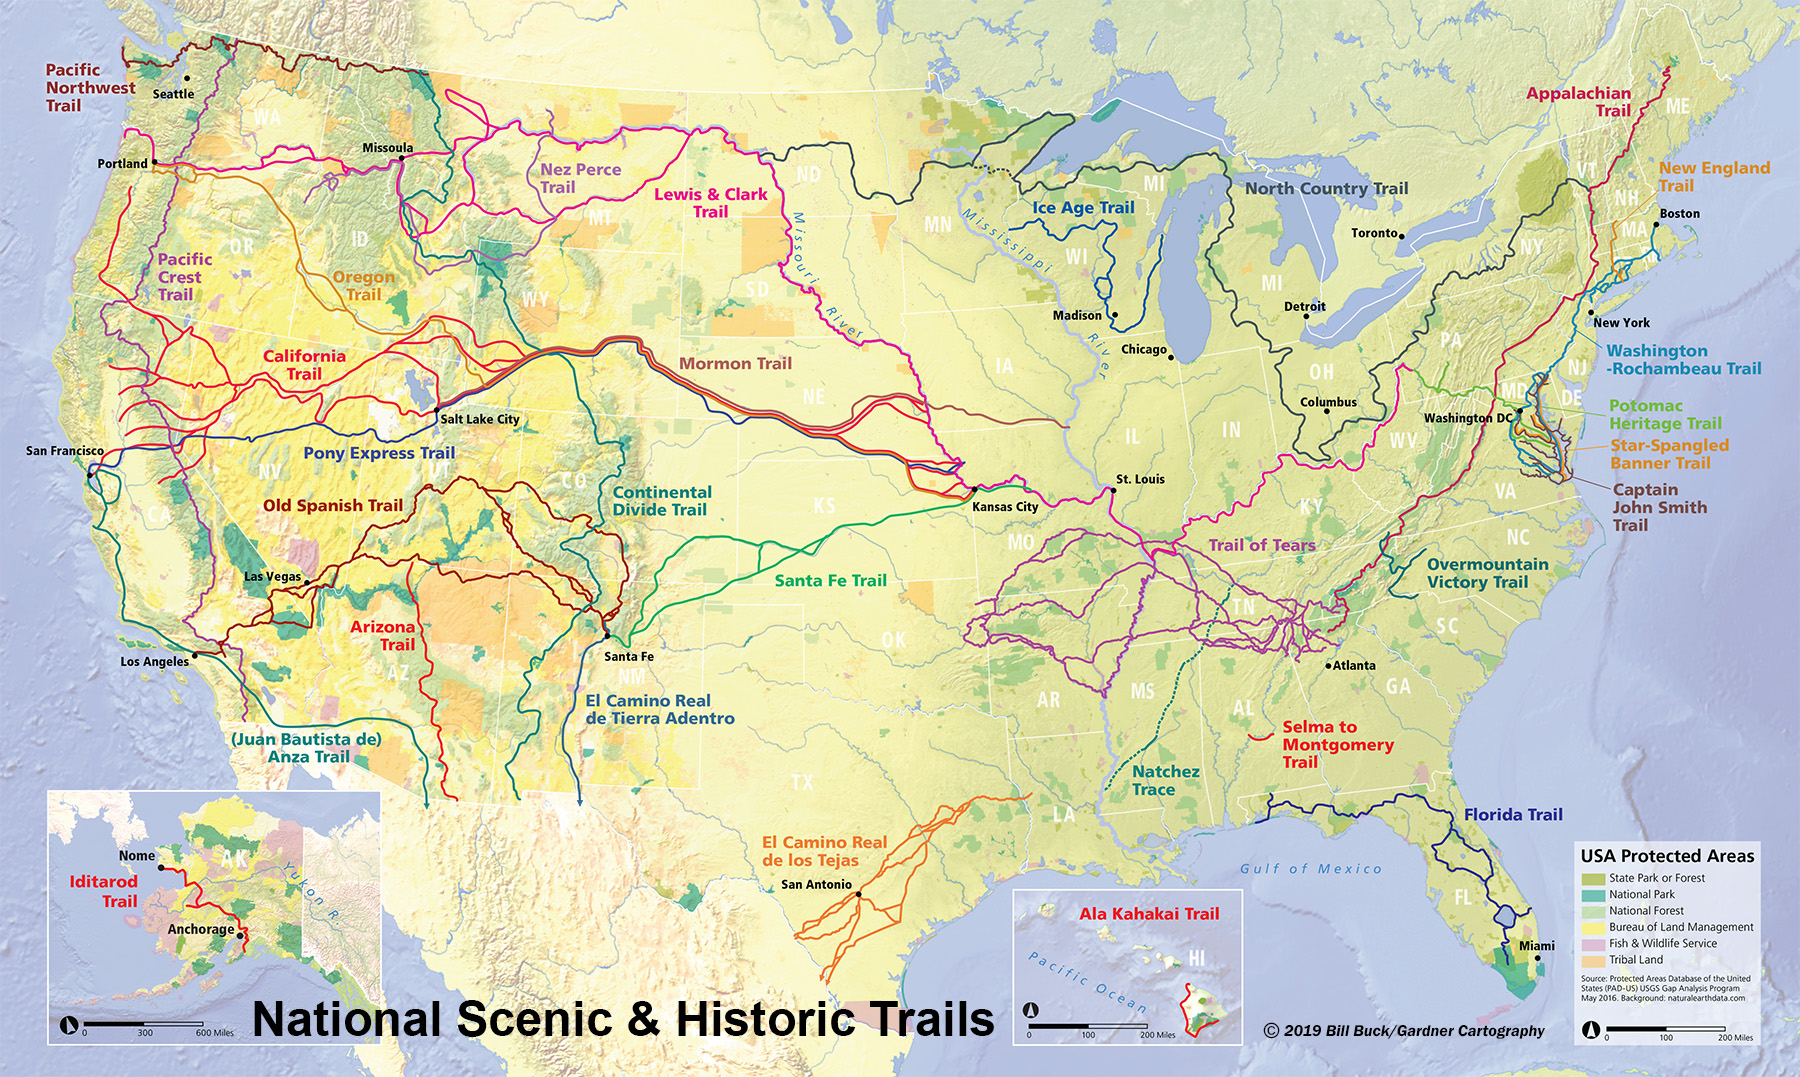 National Trails System Map – courtesy of National Park Service